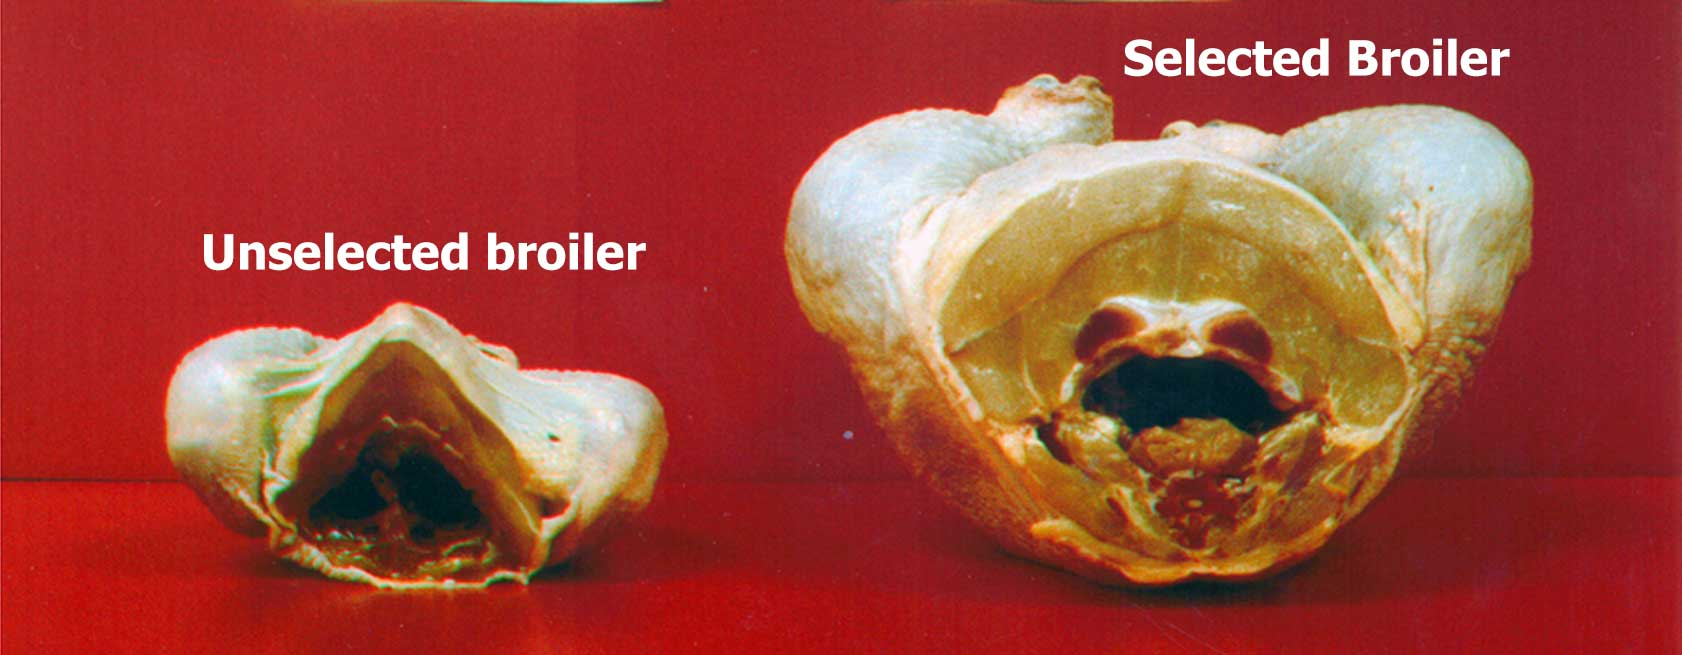 Figure 1. Genetic selection and improved nutrition are the main reasons poultry producers are able to produce a much larger bird than they were 50 years ago. (Photo courtesy of G. B. Havenstein and P. R. Ferket, North Carolina State University.)